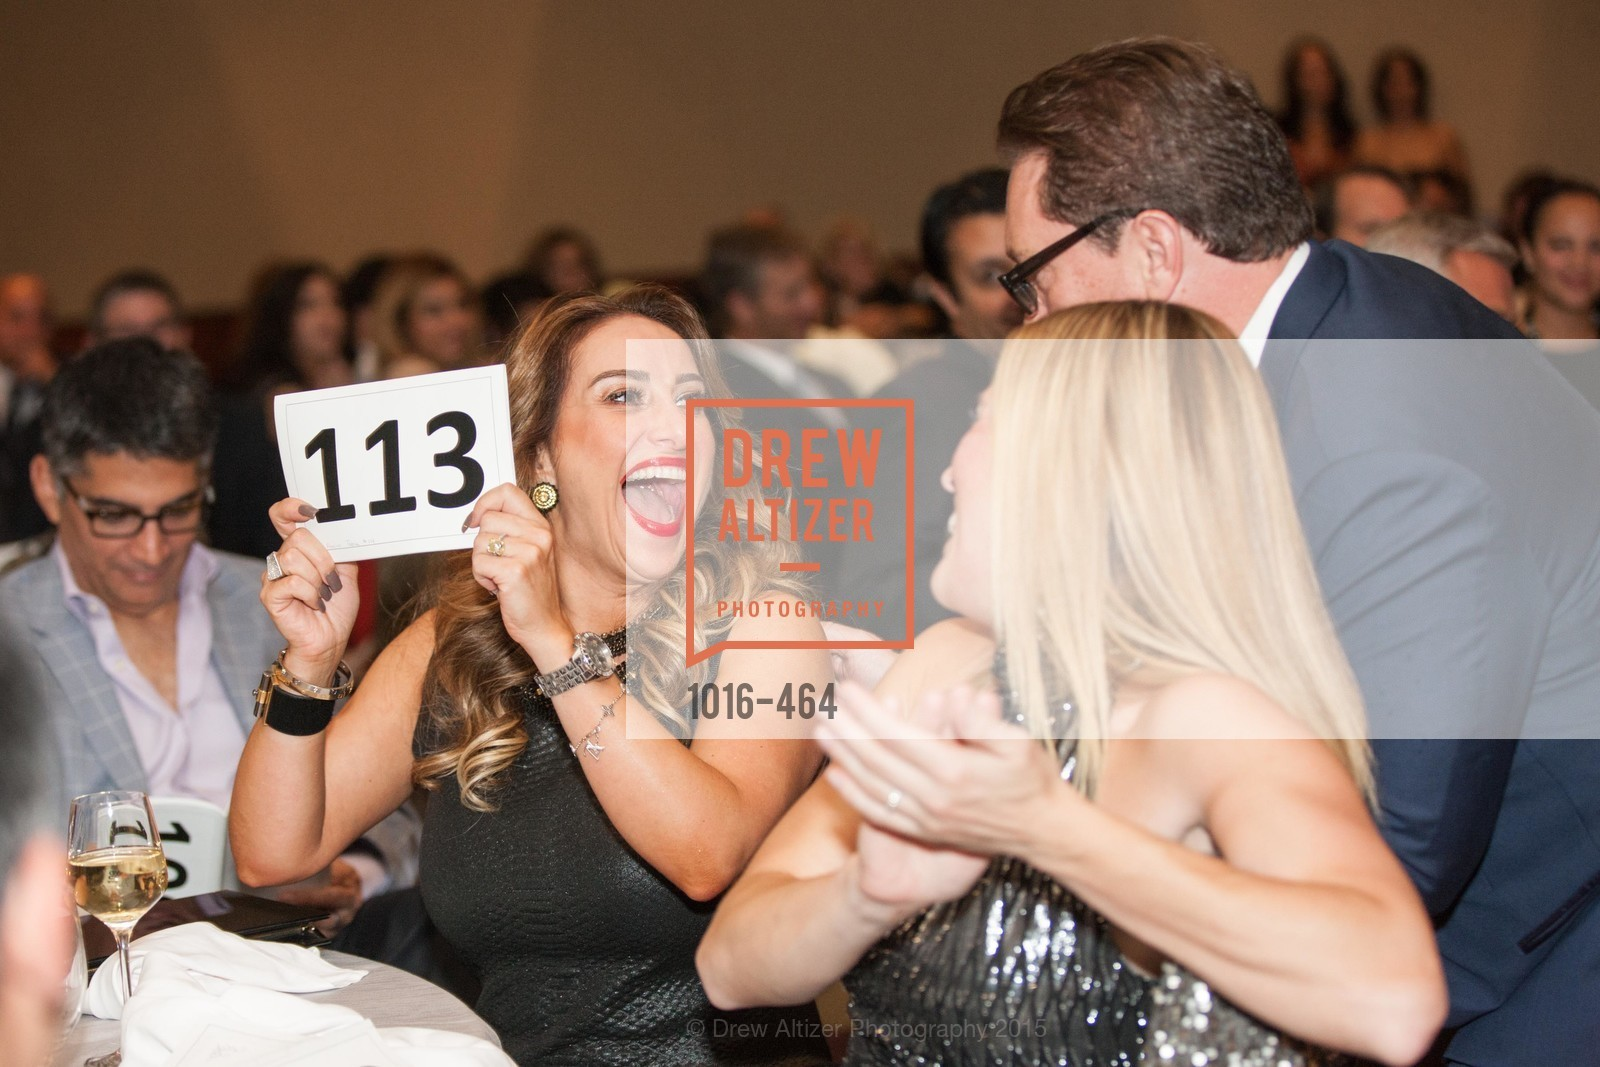 Liam Mayclem, Rachel Seda, Operation Smile Presents THE SAN FRANCISCO 2015 SMILE GALA, InterContinental Hotel, November 7th, 2015,Drew Altizer, Drew Altizer Photography, full-service agency, private events, San Francisco photographer, photographer california